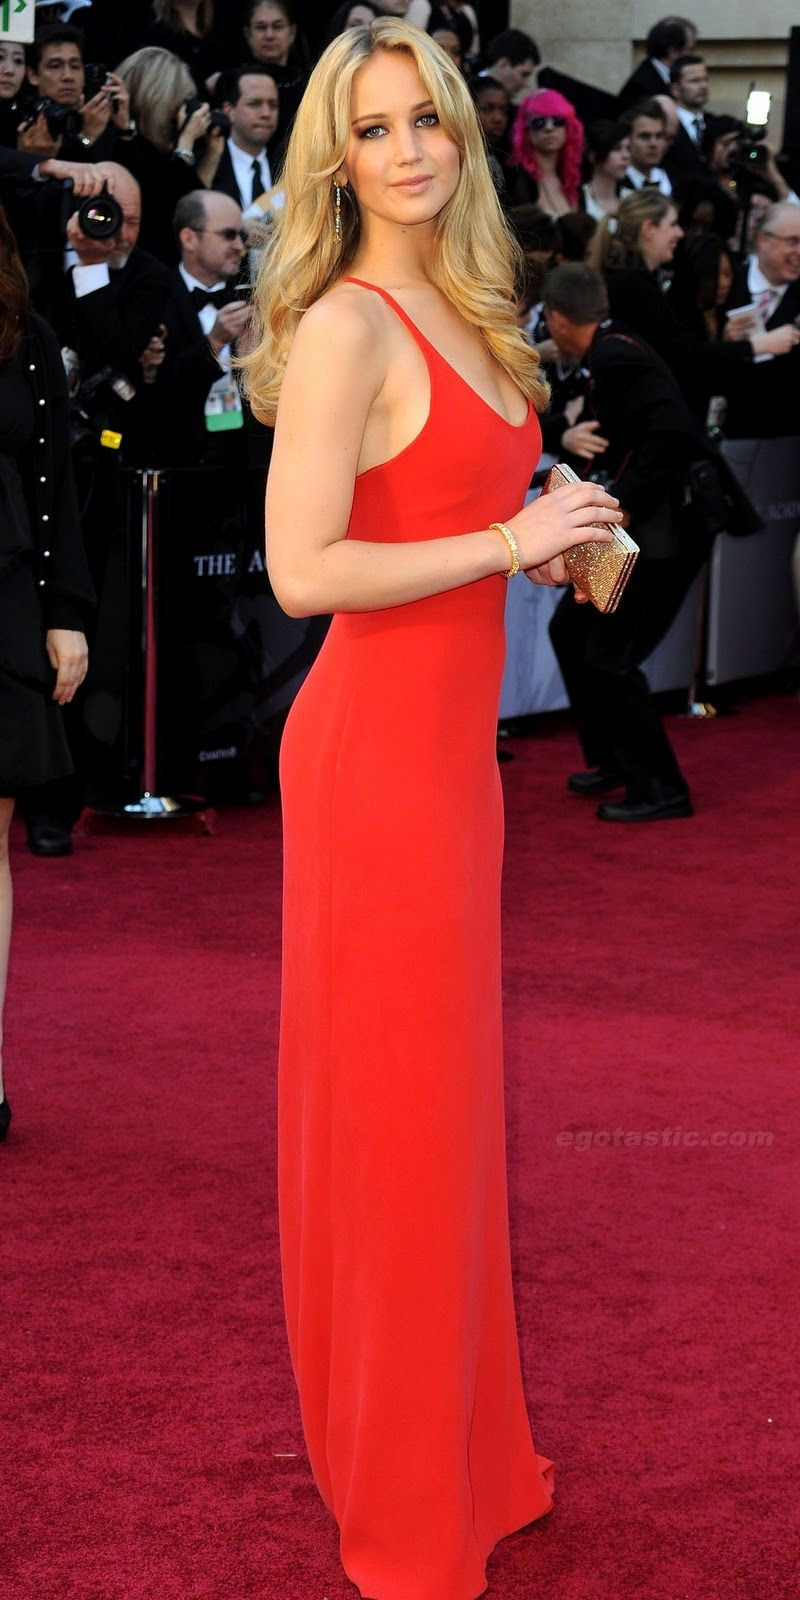 Jennifer Lawrence in Calvin Klein at The Academy Awards